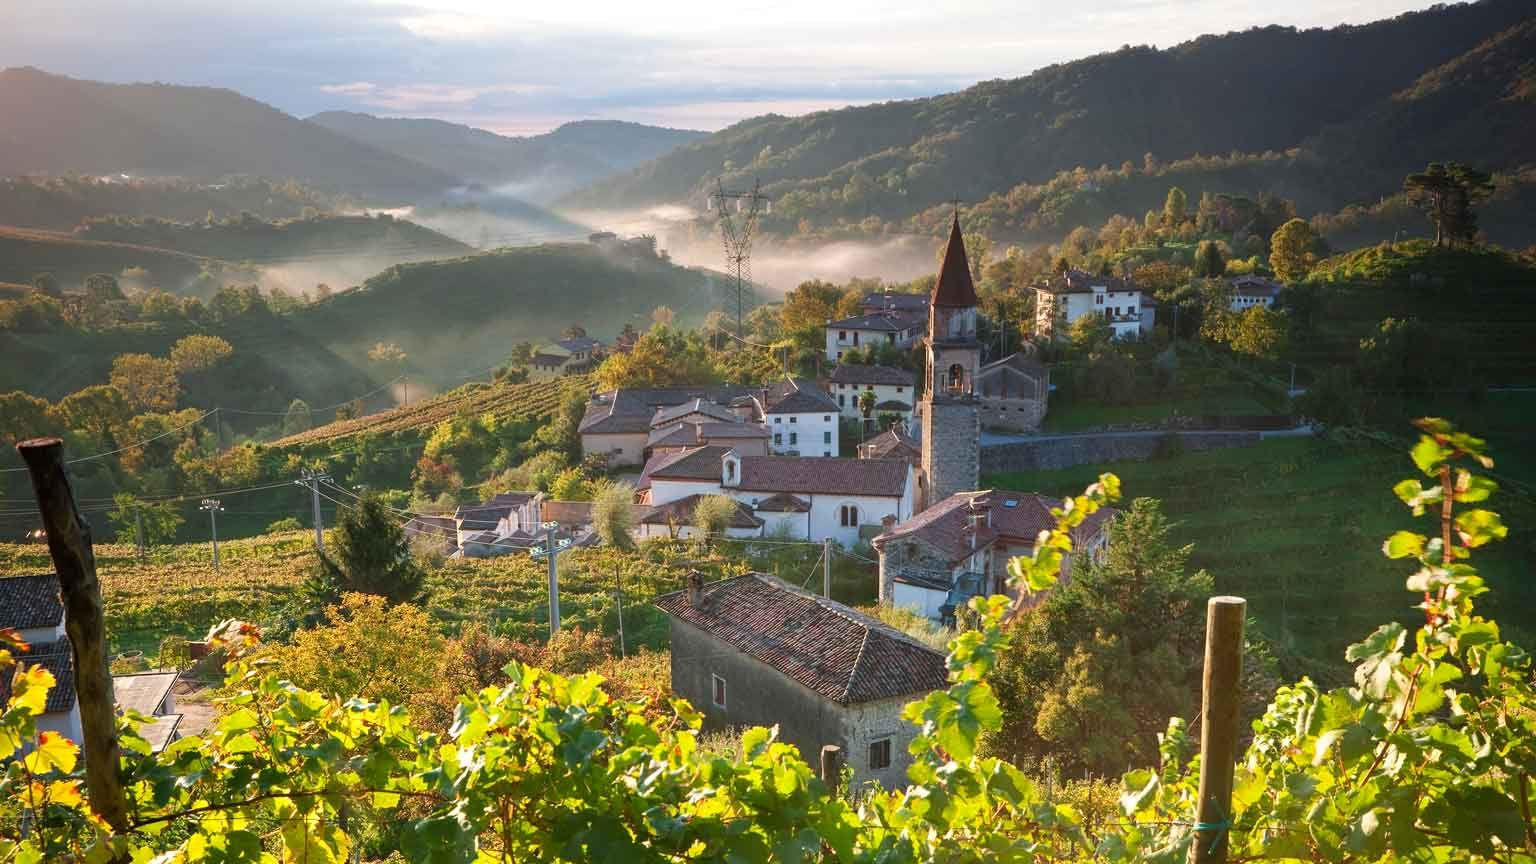 Rolle Village & Prosecco Vineyards